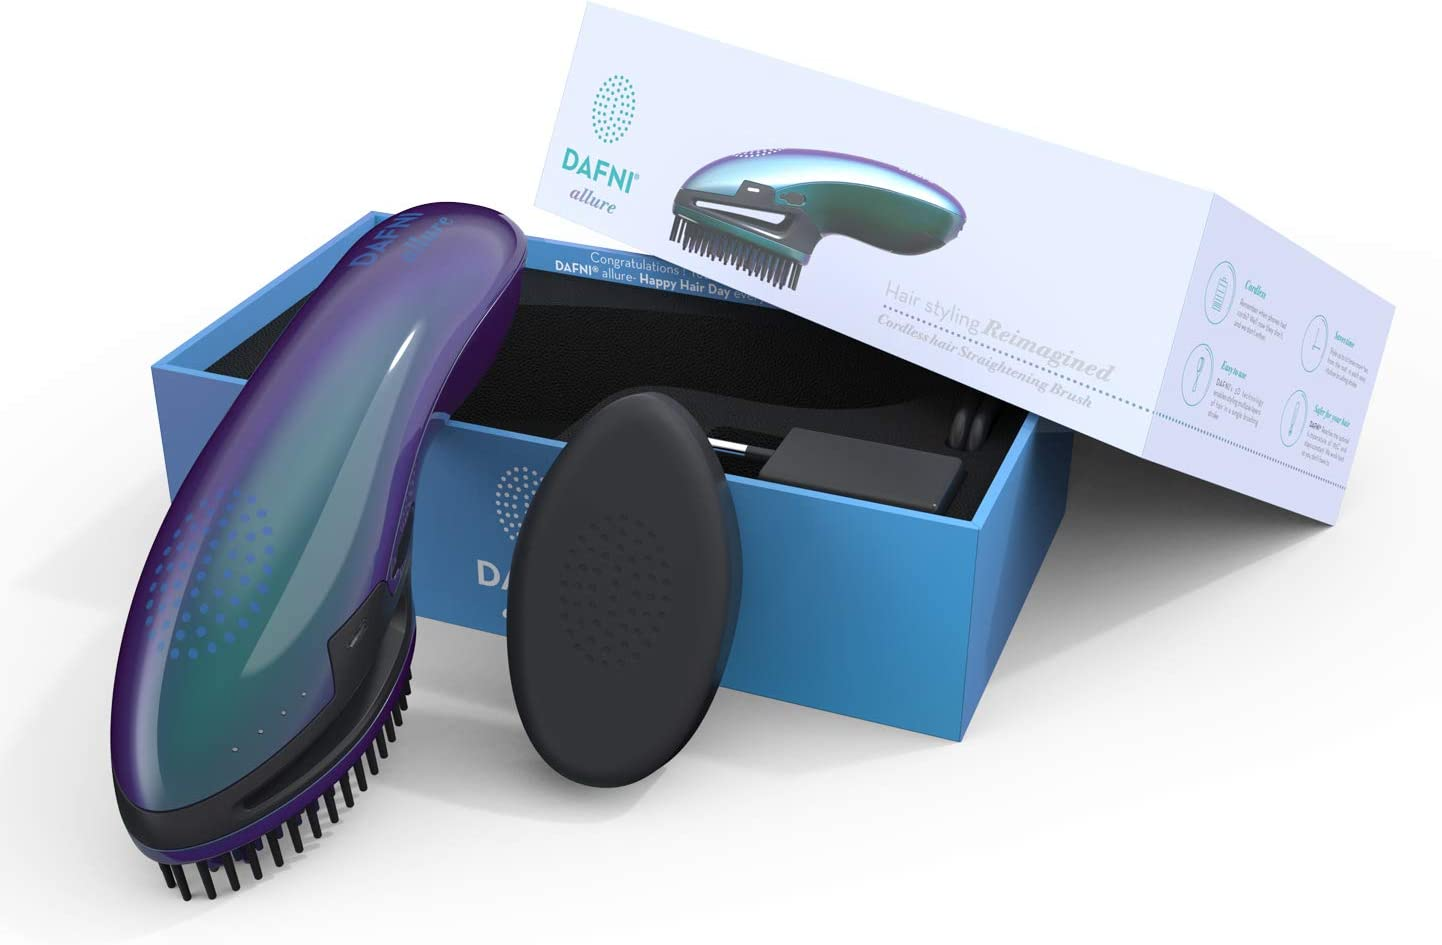 DAFNI Allure Portable Hair Straightening Brush Styles Hair Up to 10 Times Faster than a Flat Iron